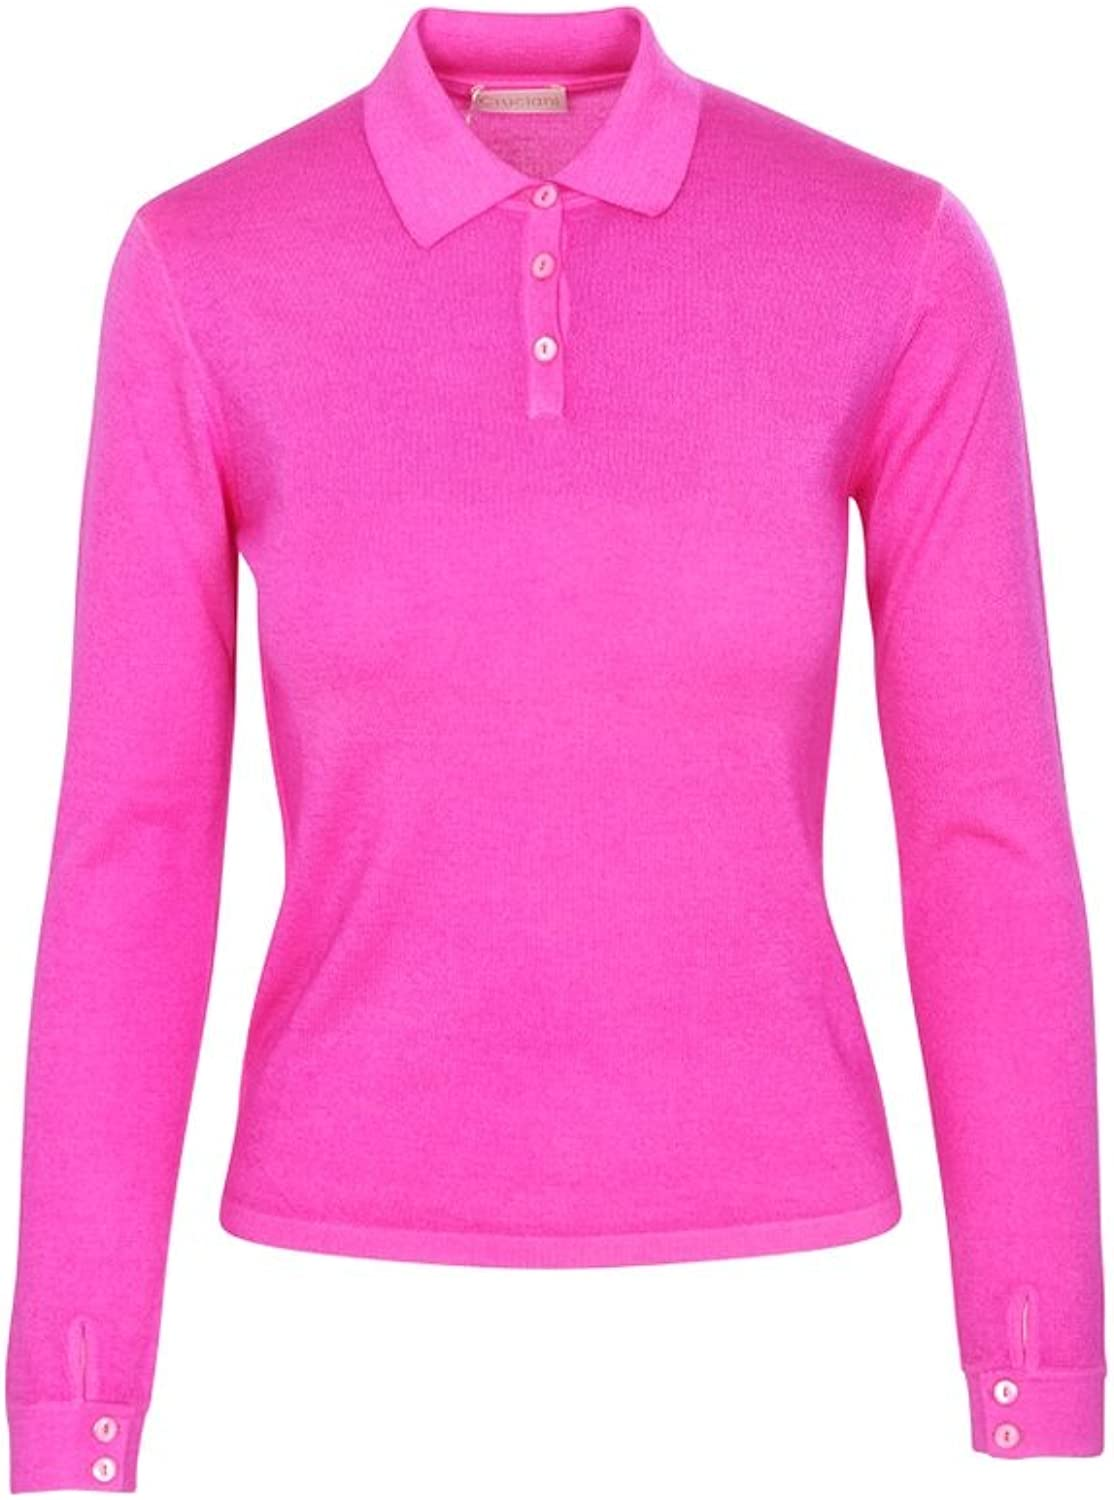 Cruciani Polo Poloshirt Women's Pink Slim Fit Cashmere Casual 40 IT